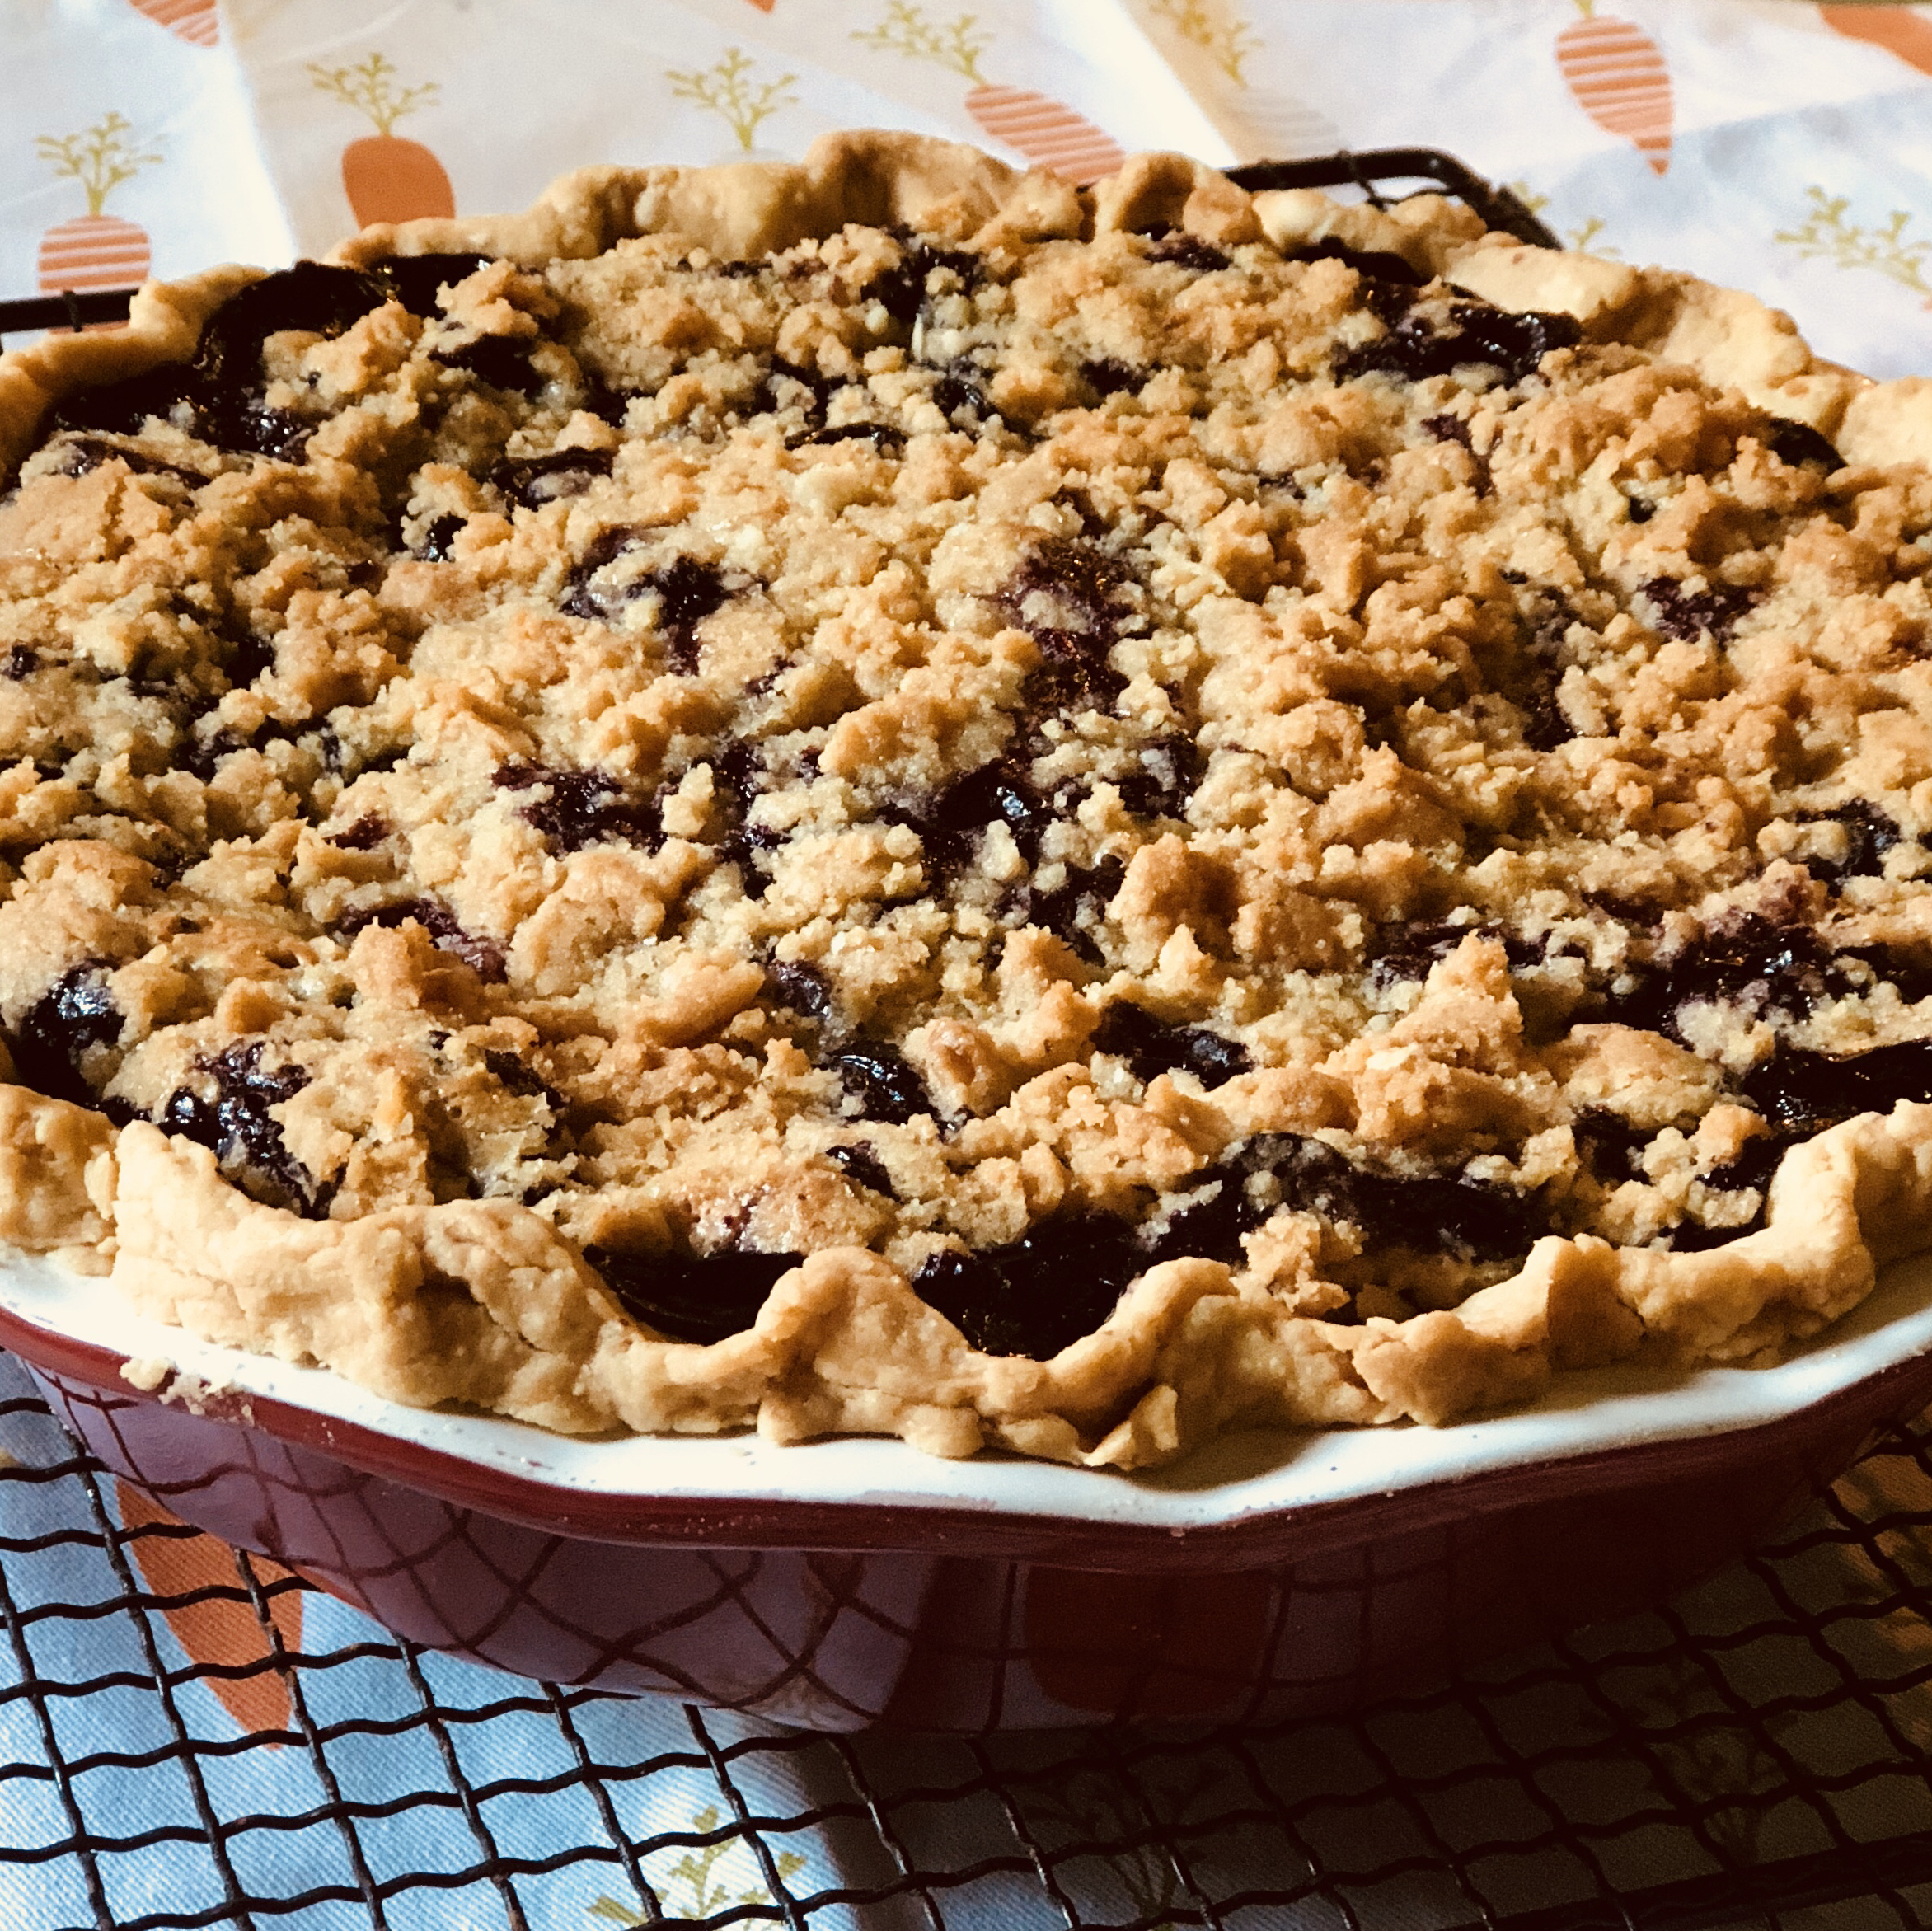 Creamy Blueberry Pie Susan Meyer